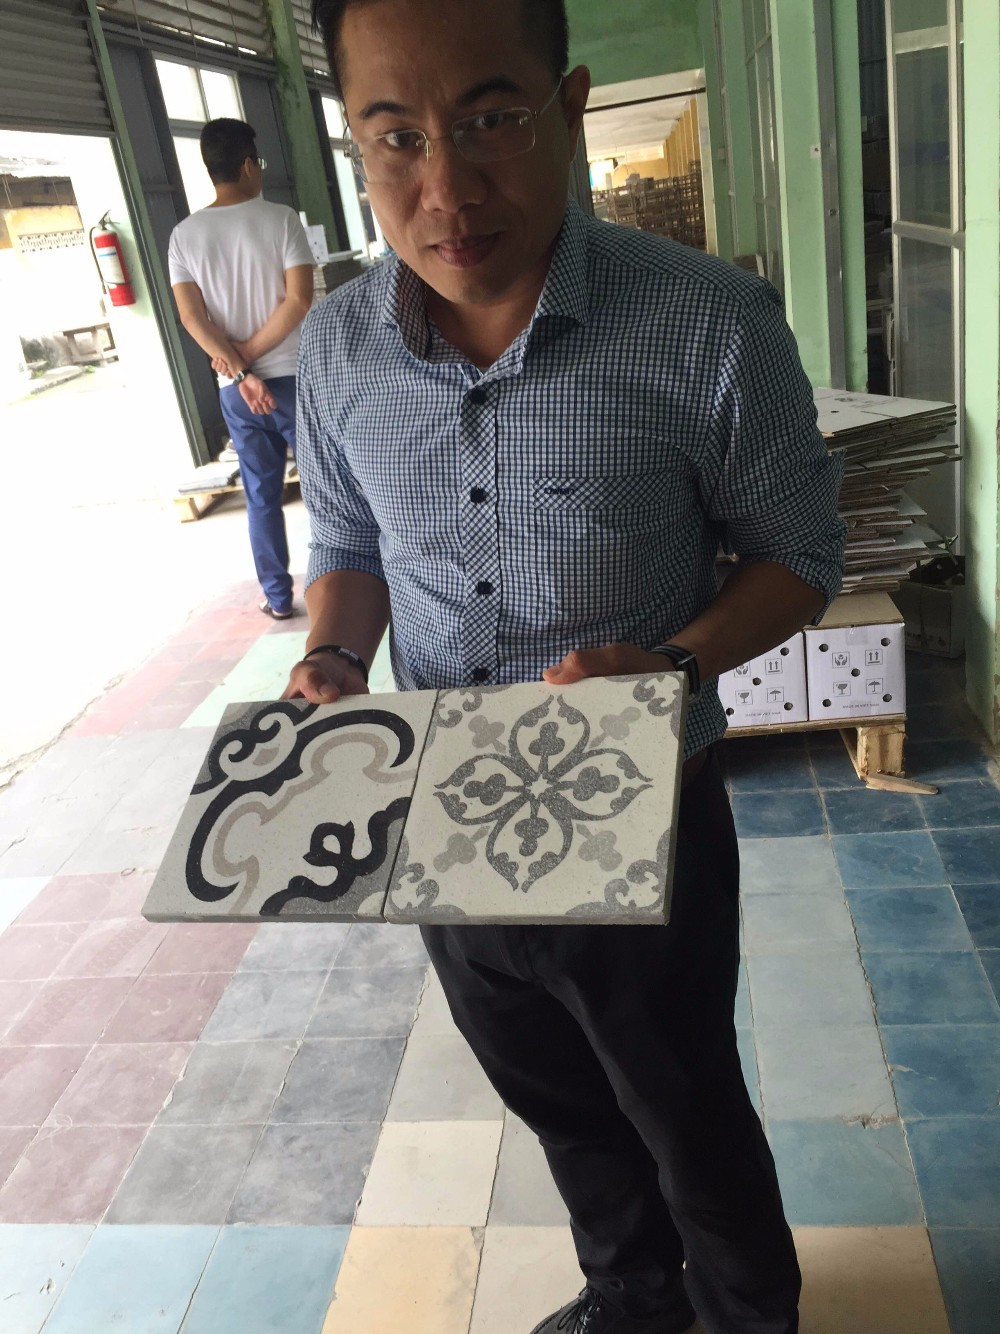 From Vietnam Encaustic Handmade Cement Tiles